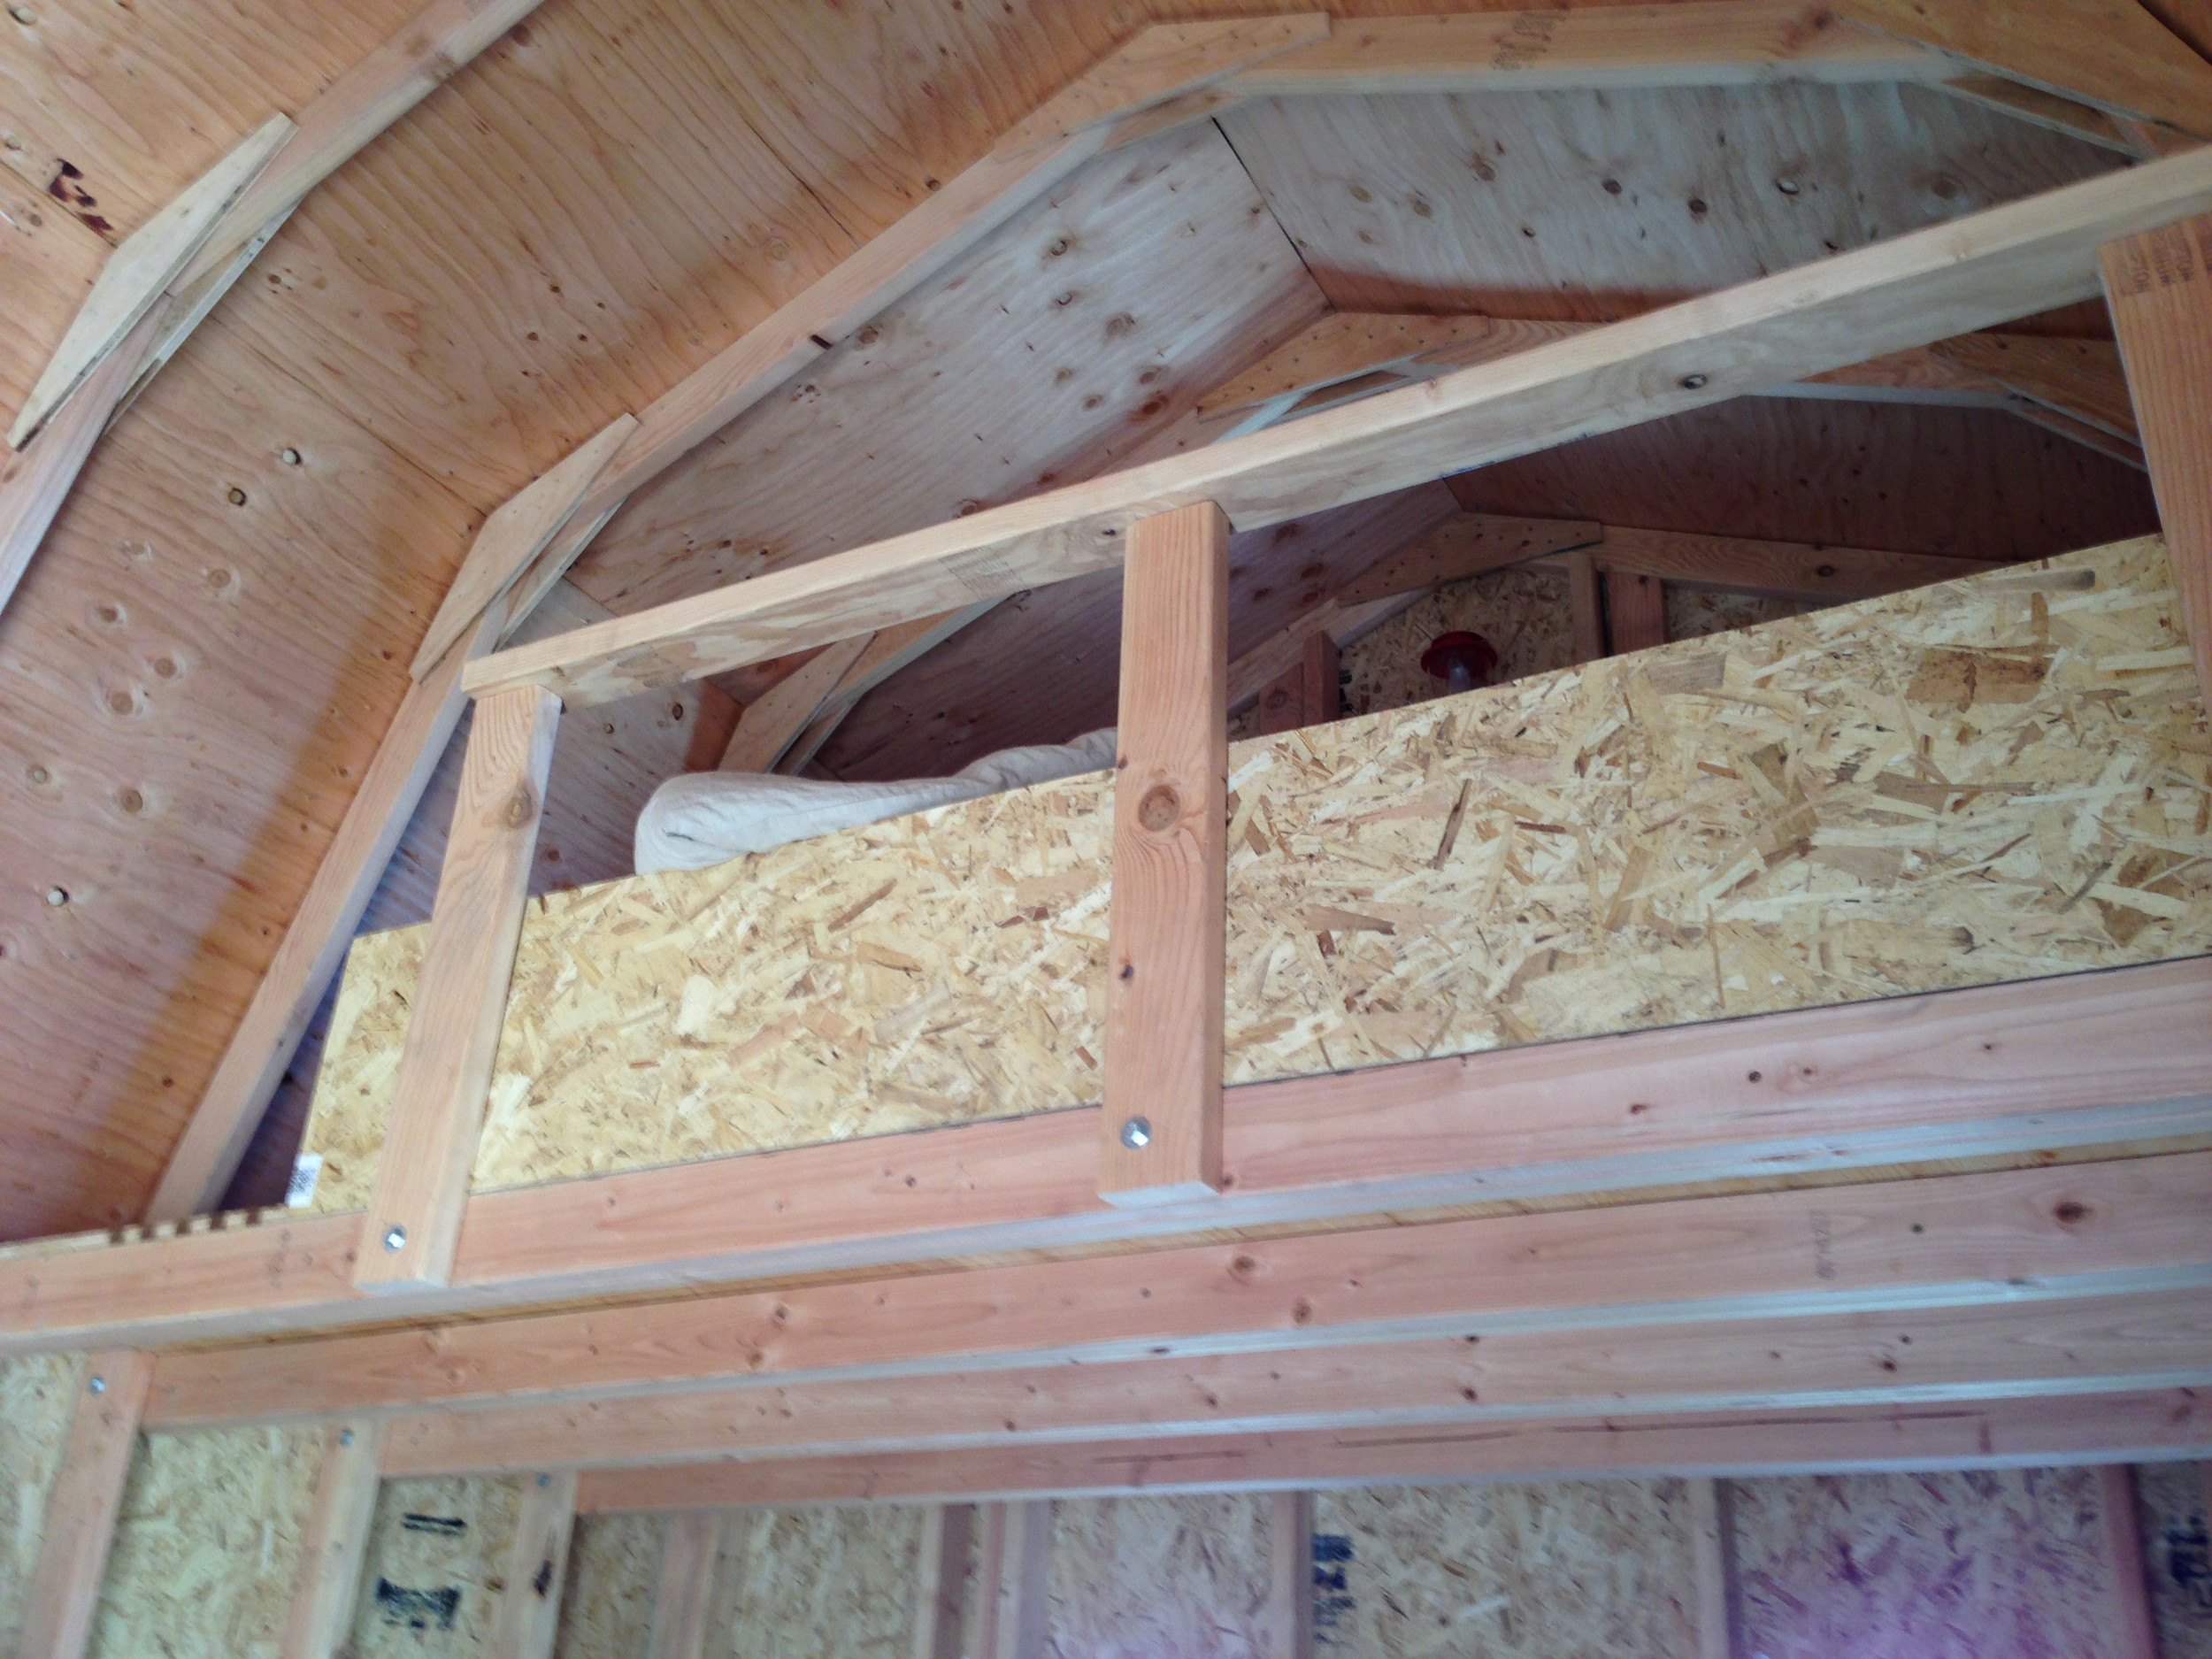 We fastened the railing to the joists with the same hardware used to attachthe joists to the studs, making the railing extremely sturdy. The extra piece of siding was a temporary wall to prevent my phone and eyeglasses from getting knocked off unintentionally.